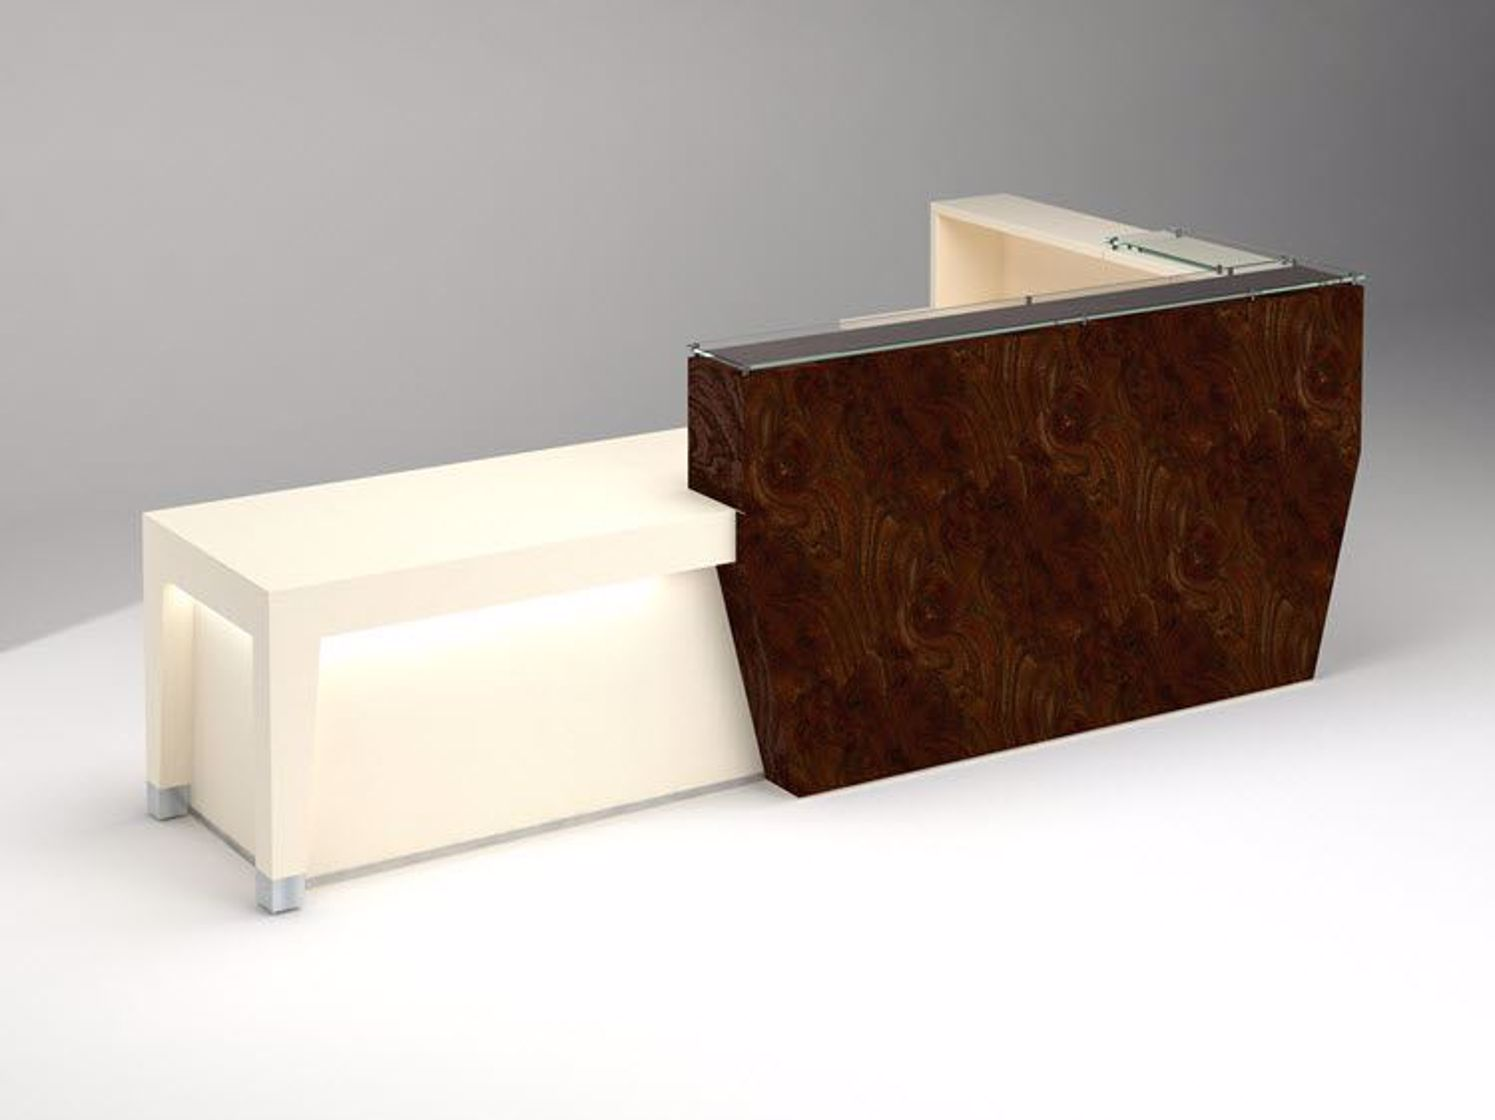 How to Buy a Valued-Based Modern Reception Desk Without Overpaying